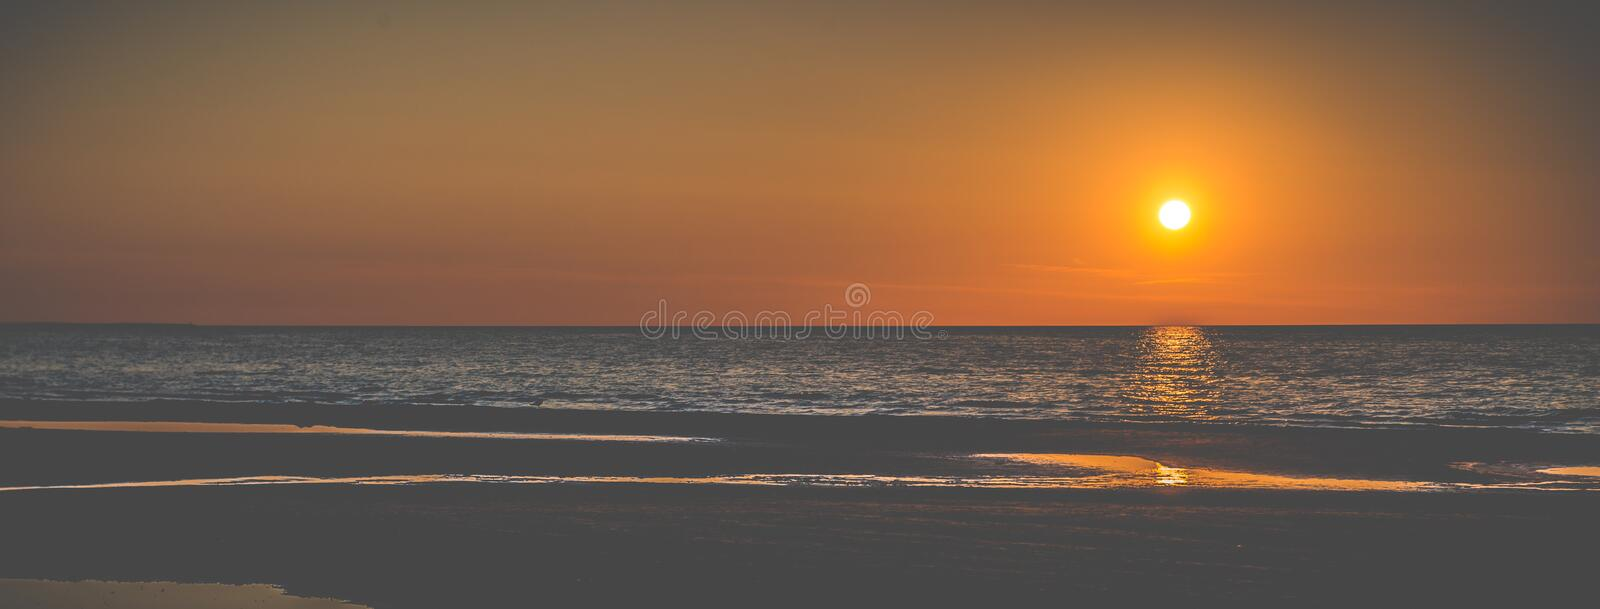 Sunset at the seaside banner royalty free stock images